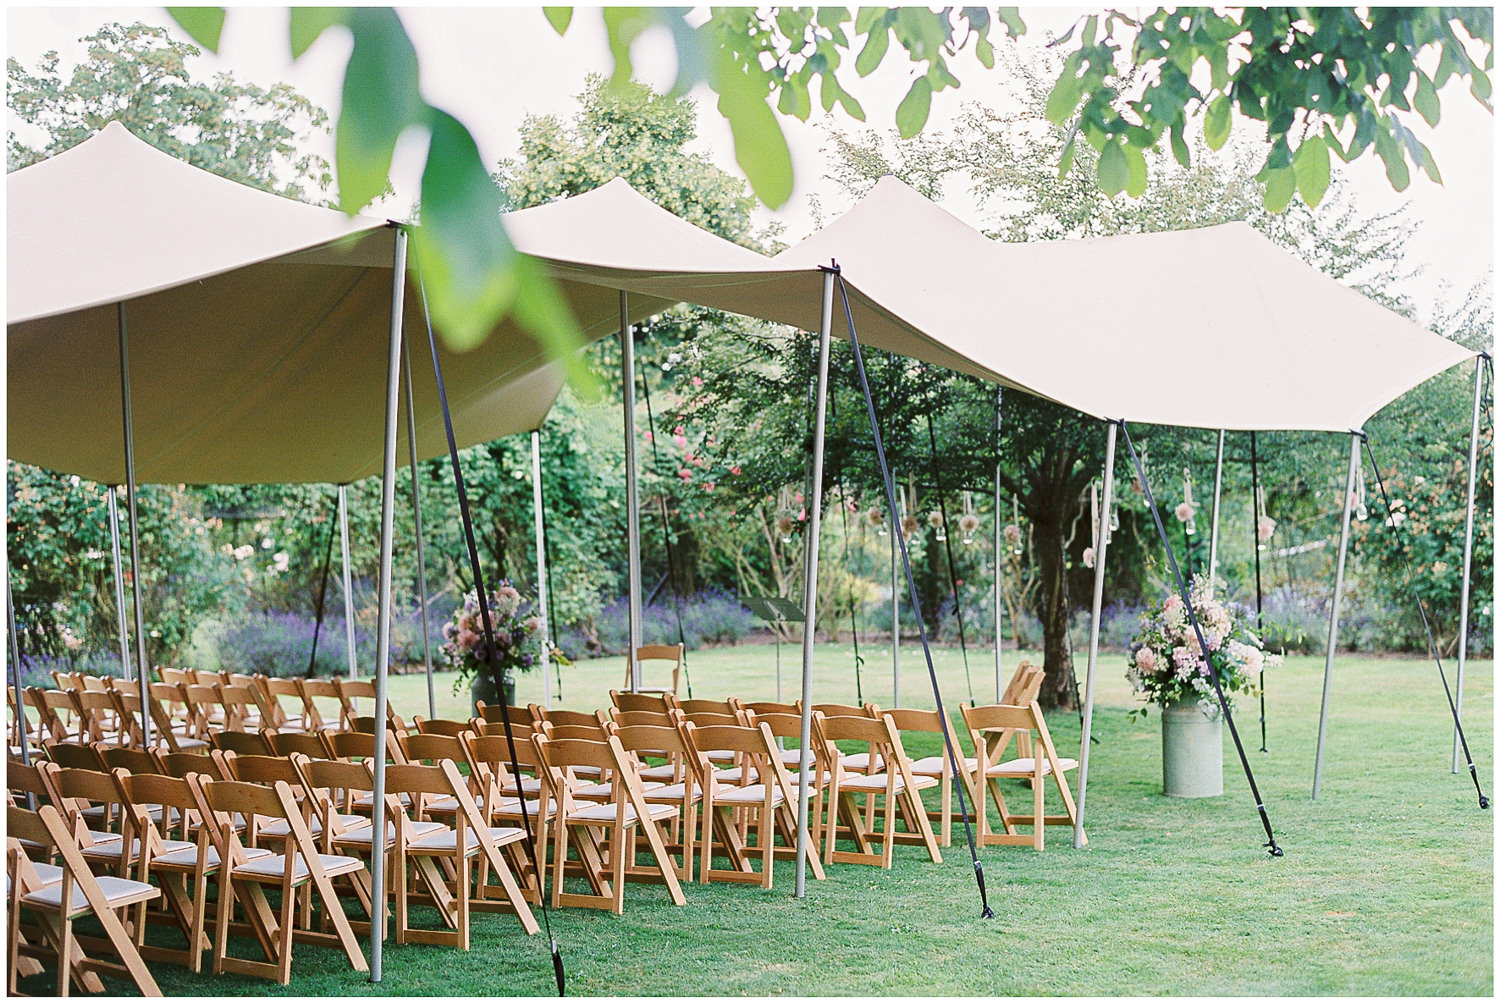 newington house, papakata marquee wedding, outdoor ceremony, green & gorgeous, canopy